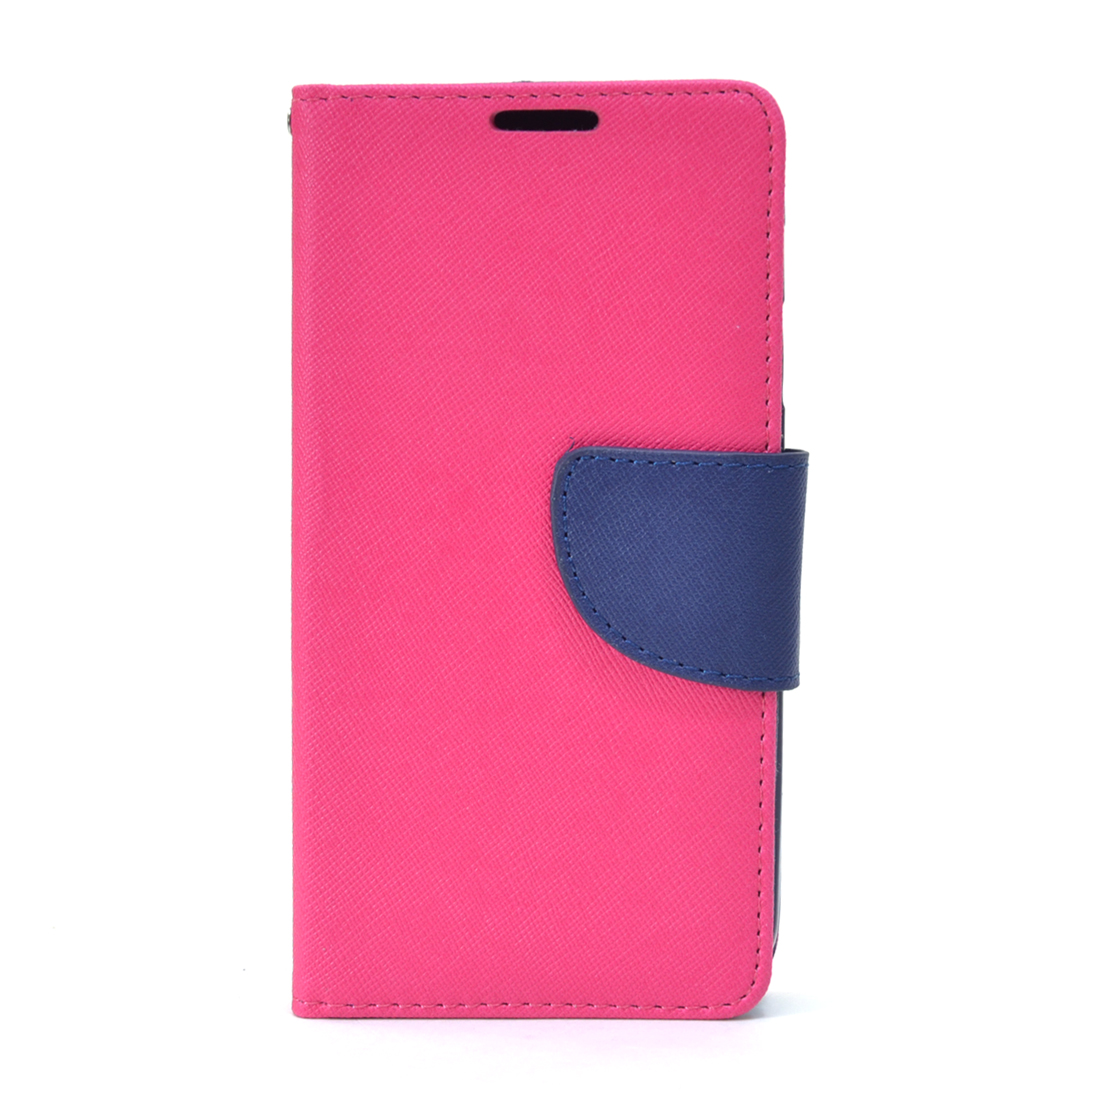 Dasein® Simple Magnetic Snap Phone Case for Samsung S4